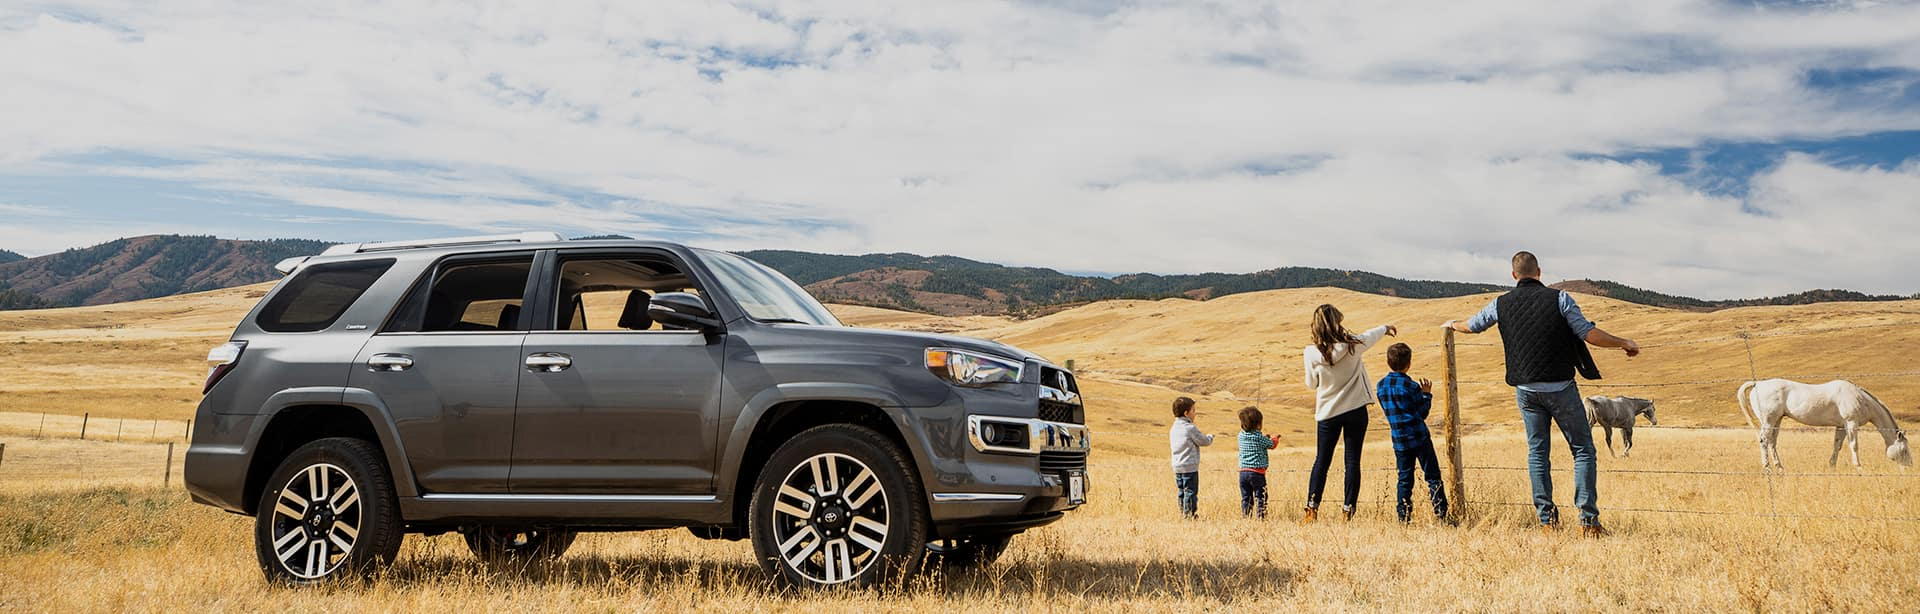 family-watches-horses-next-to-parked-Toyota-SUV